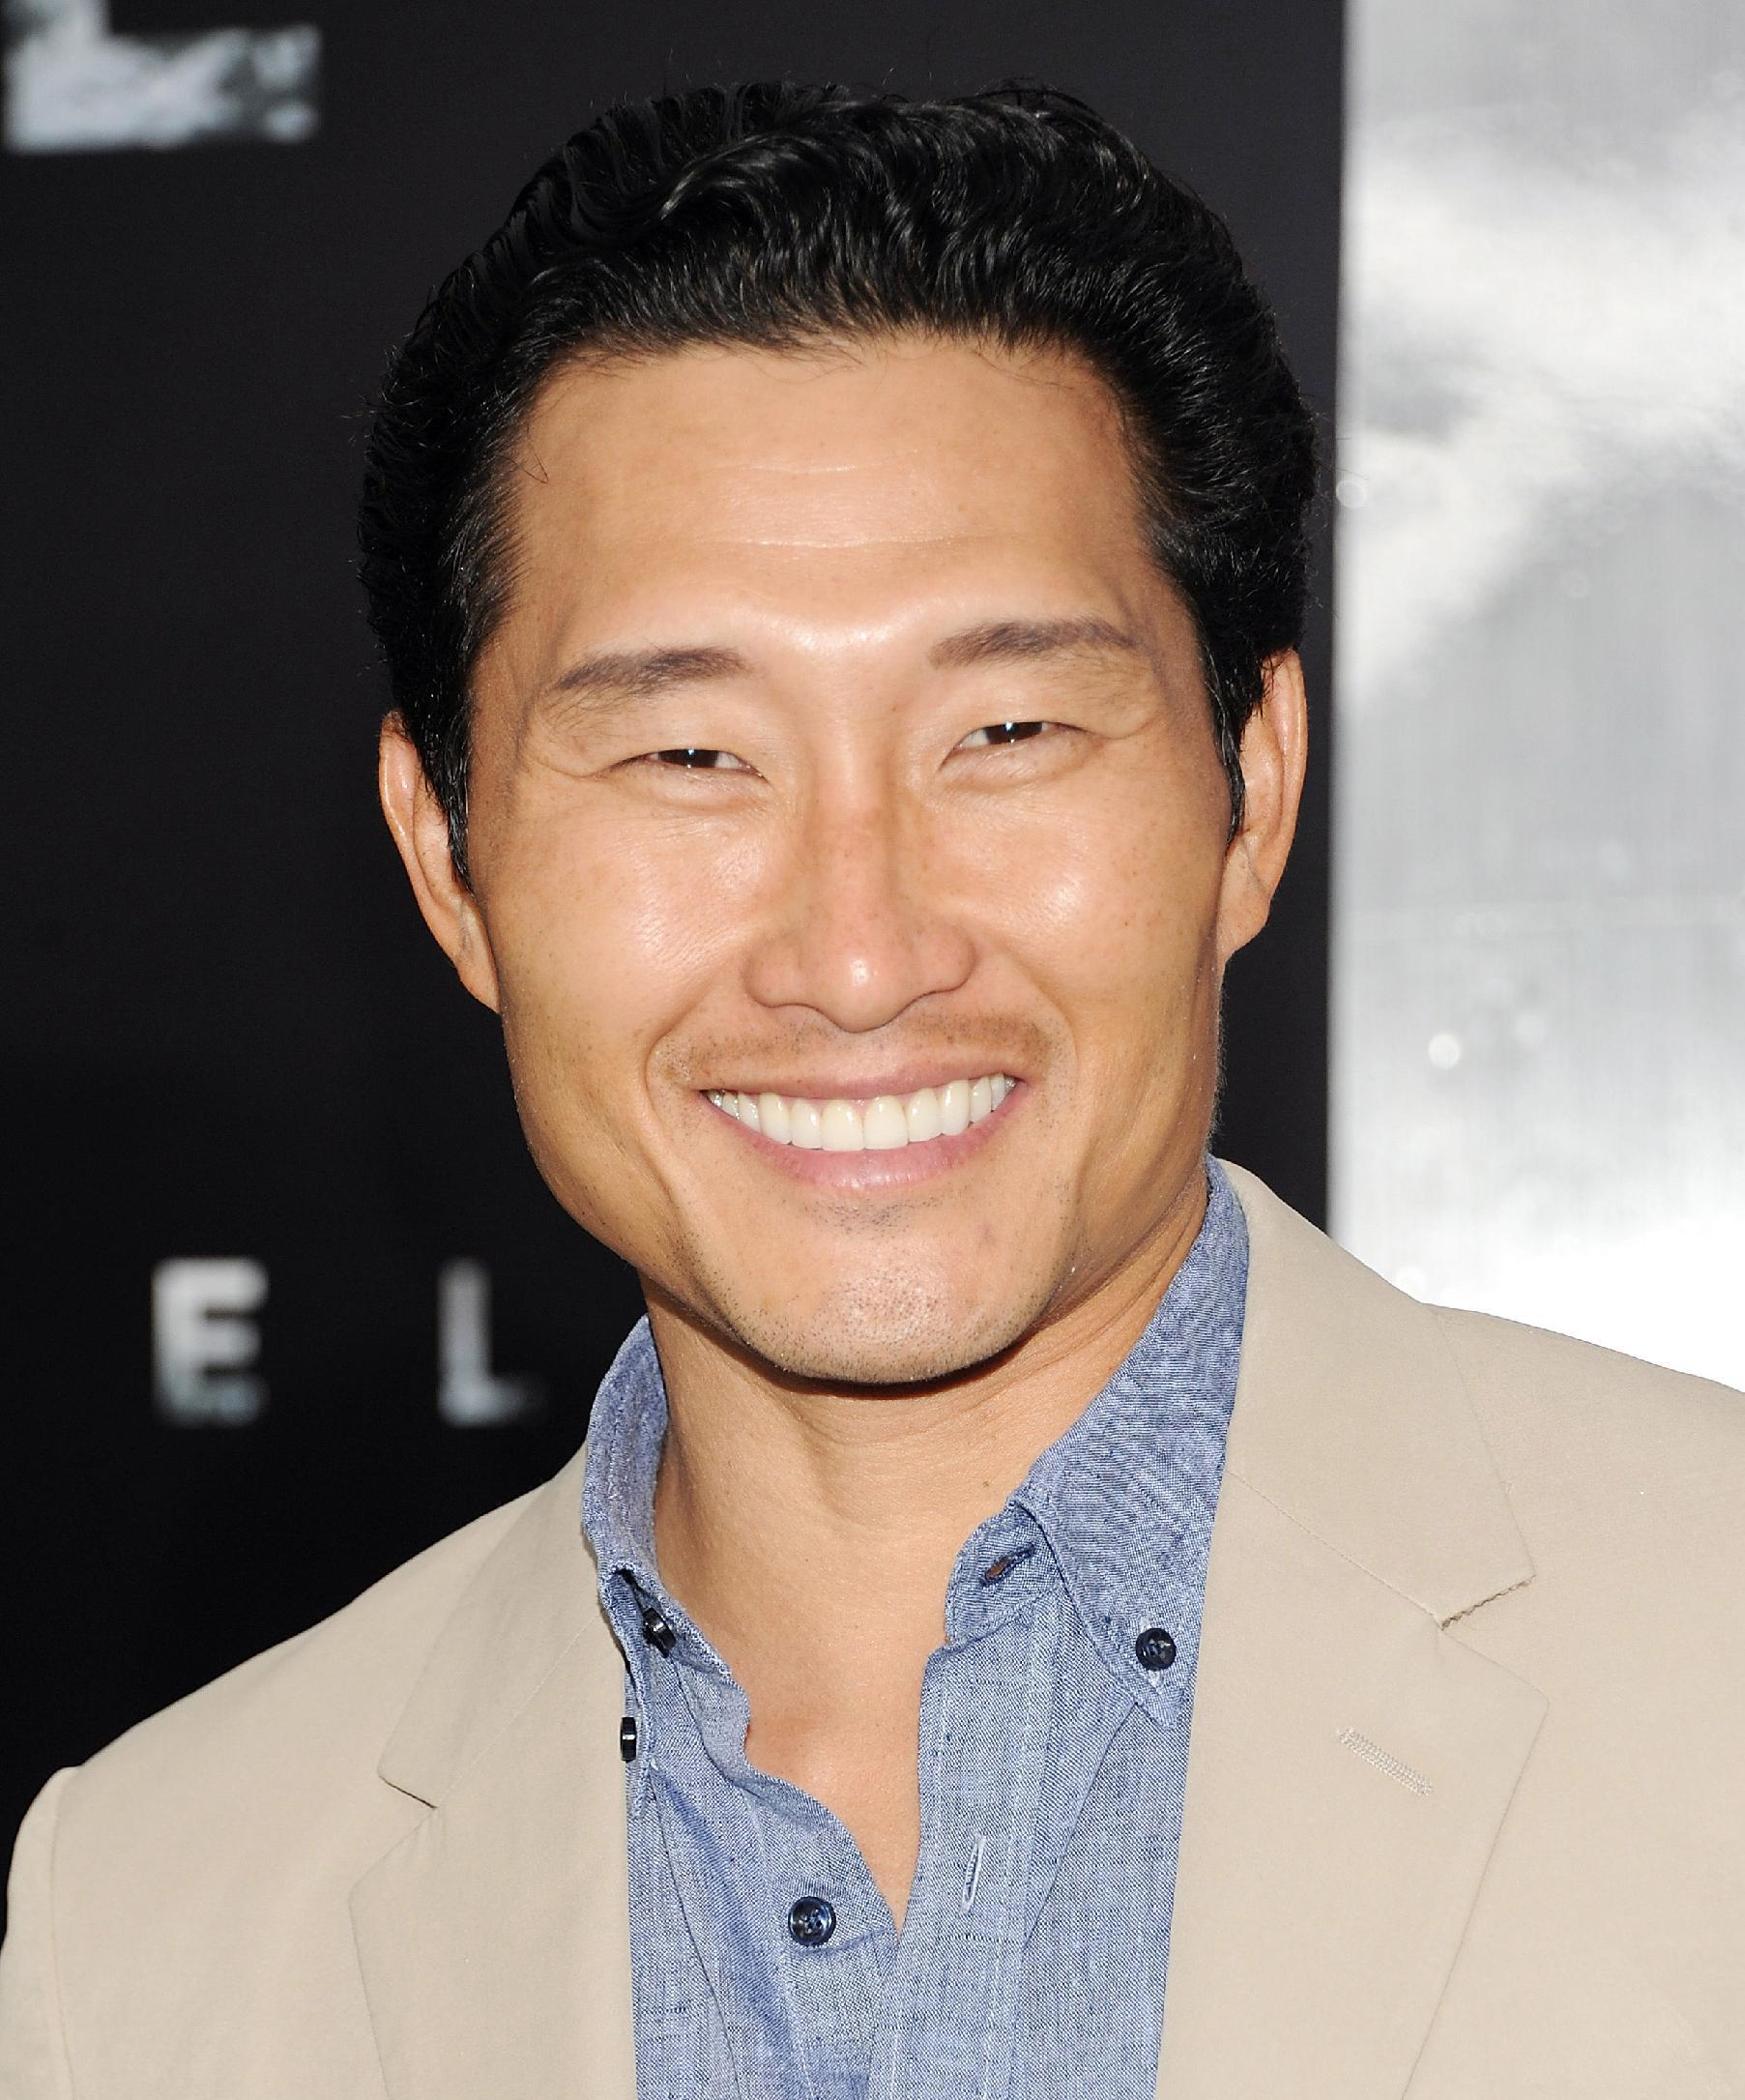 Daniel Dae Kim takes control in 'Hawaii Five-0' and beyond